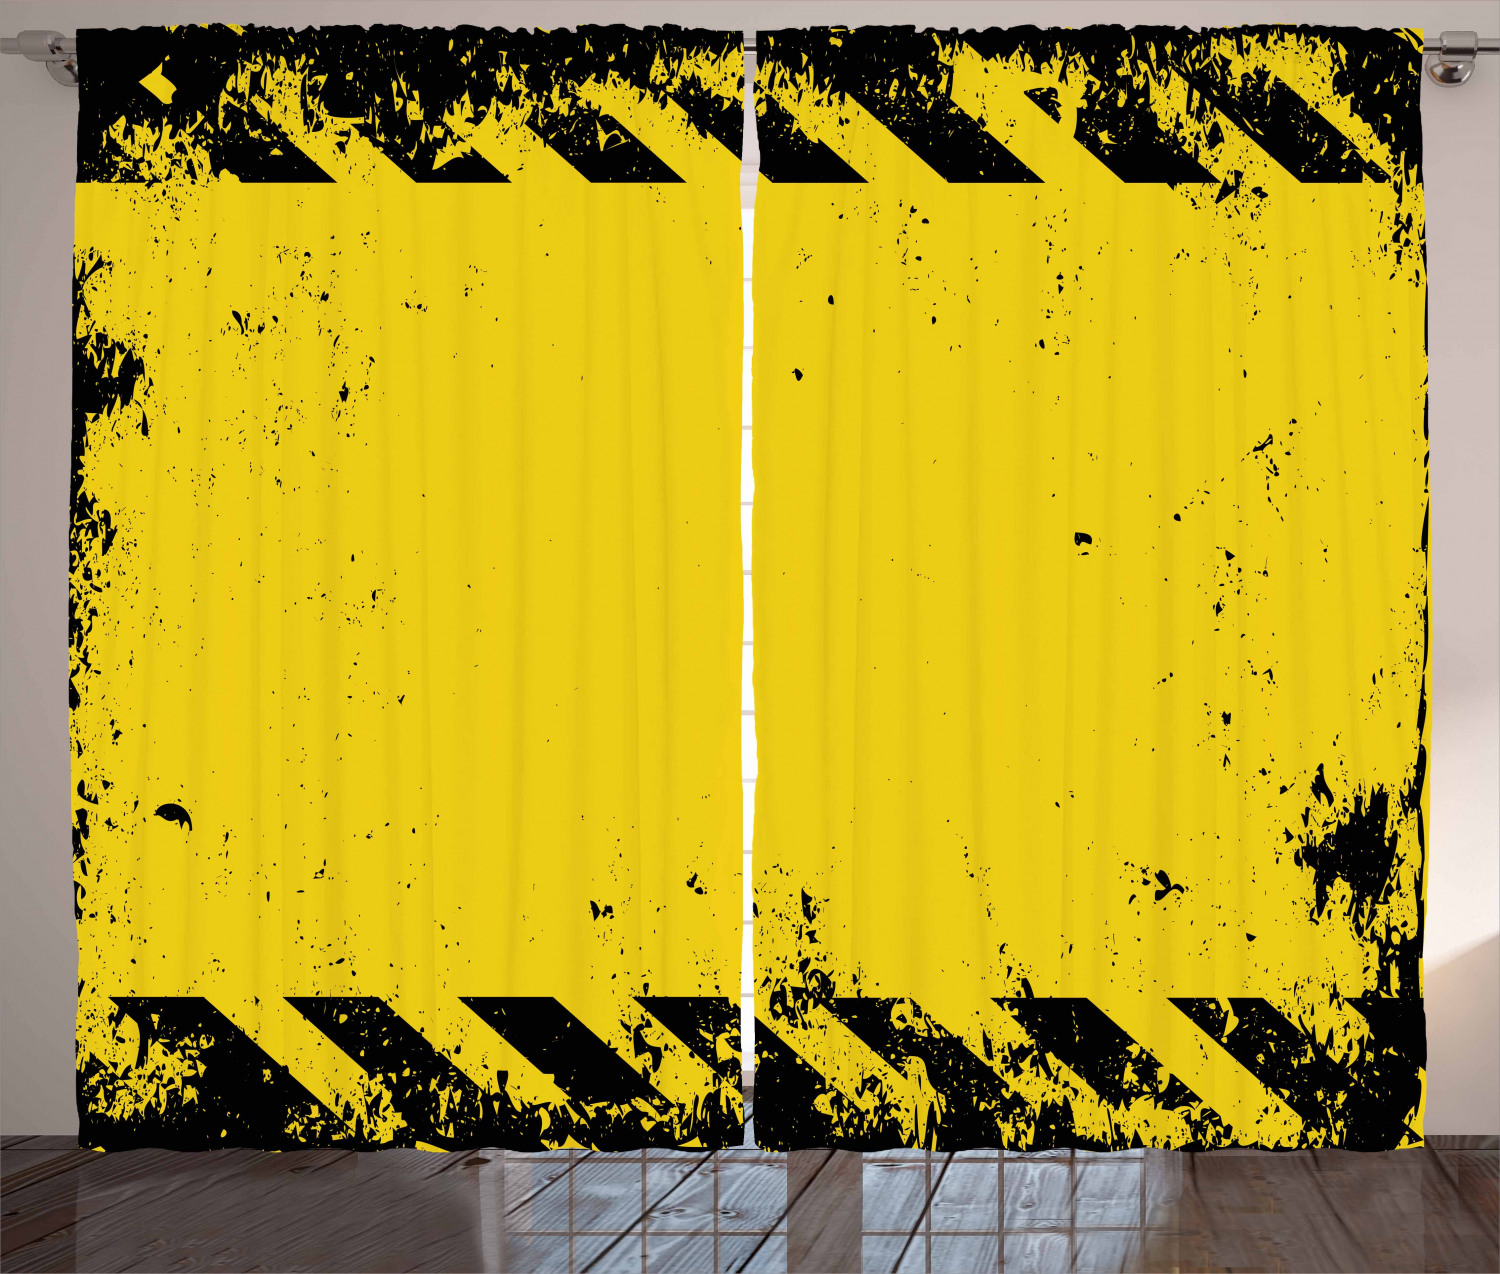 vintage yellow curtains 2 panels set hazard theme caution construction tape illustration with grunge look window drapes for living room bedroom